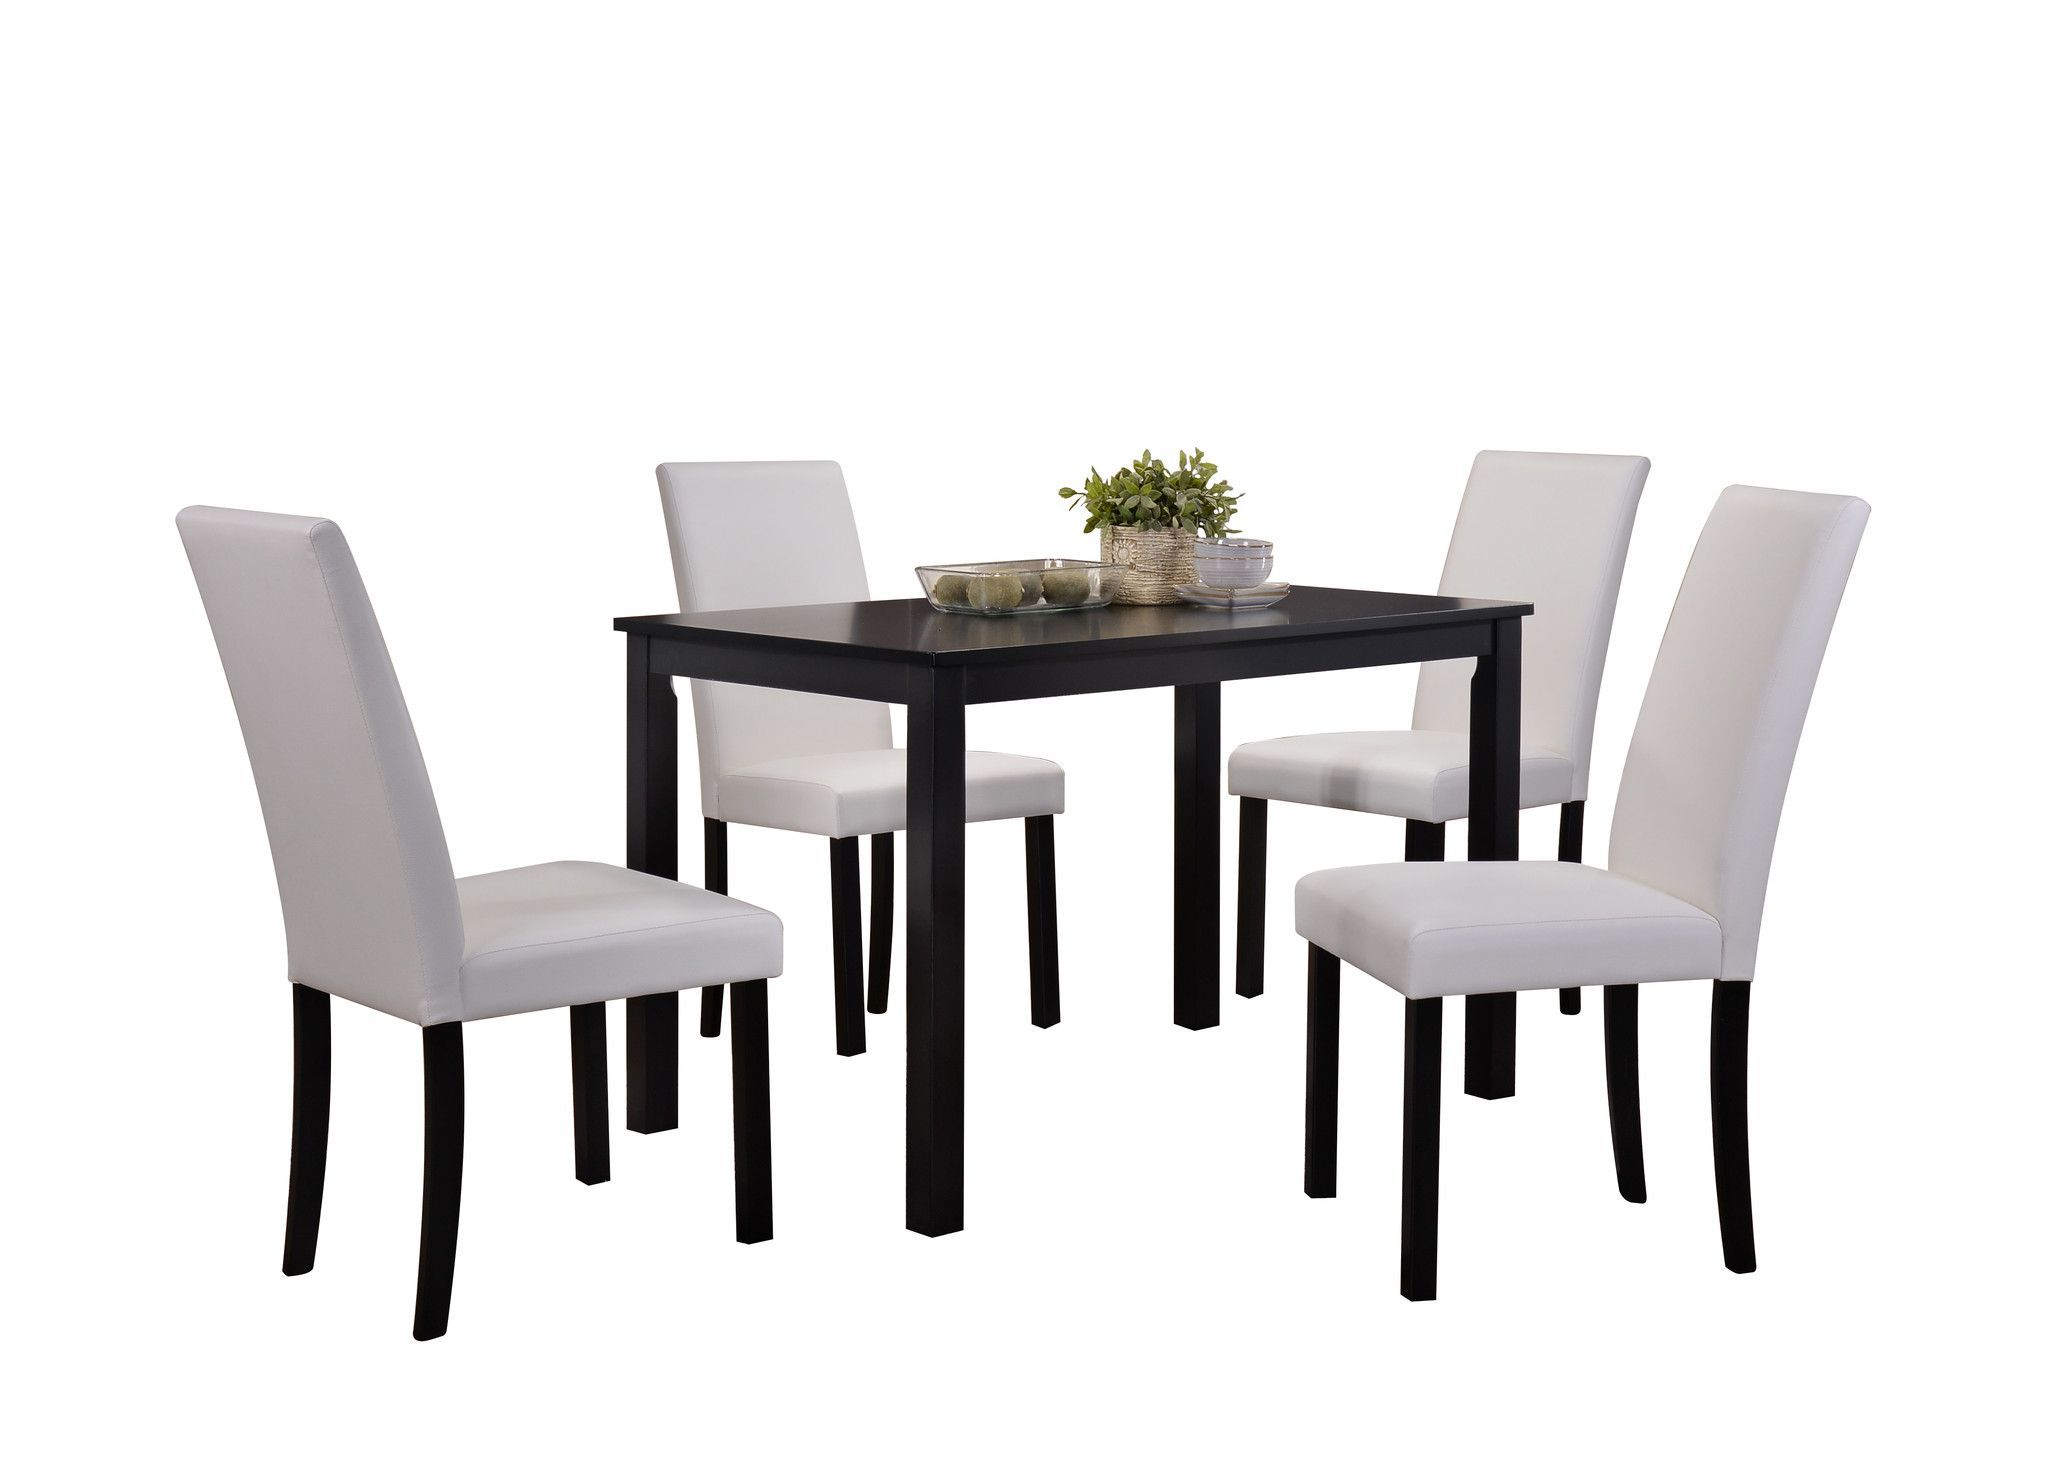 black wood rectangular dining table. 5 Piece Black Wood Rectangle Kitchen Dinette Dining Table \u0026 4 Or White Upholstered Parsons Side Chairs Set Rectangular N